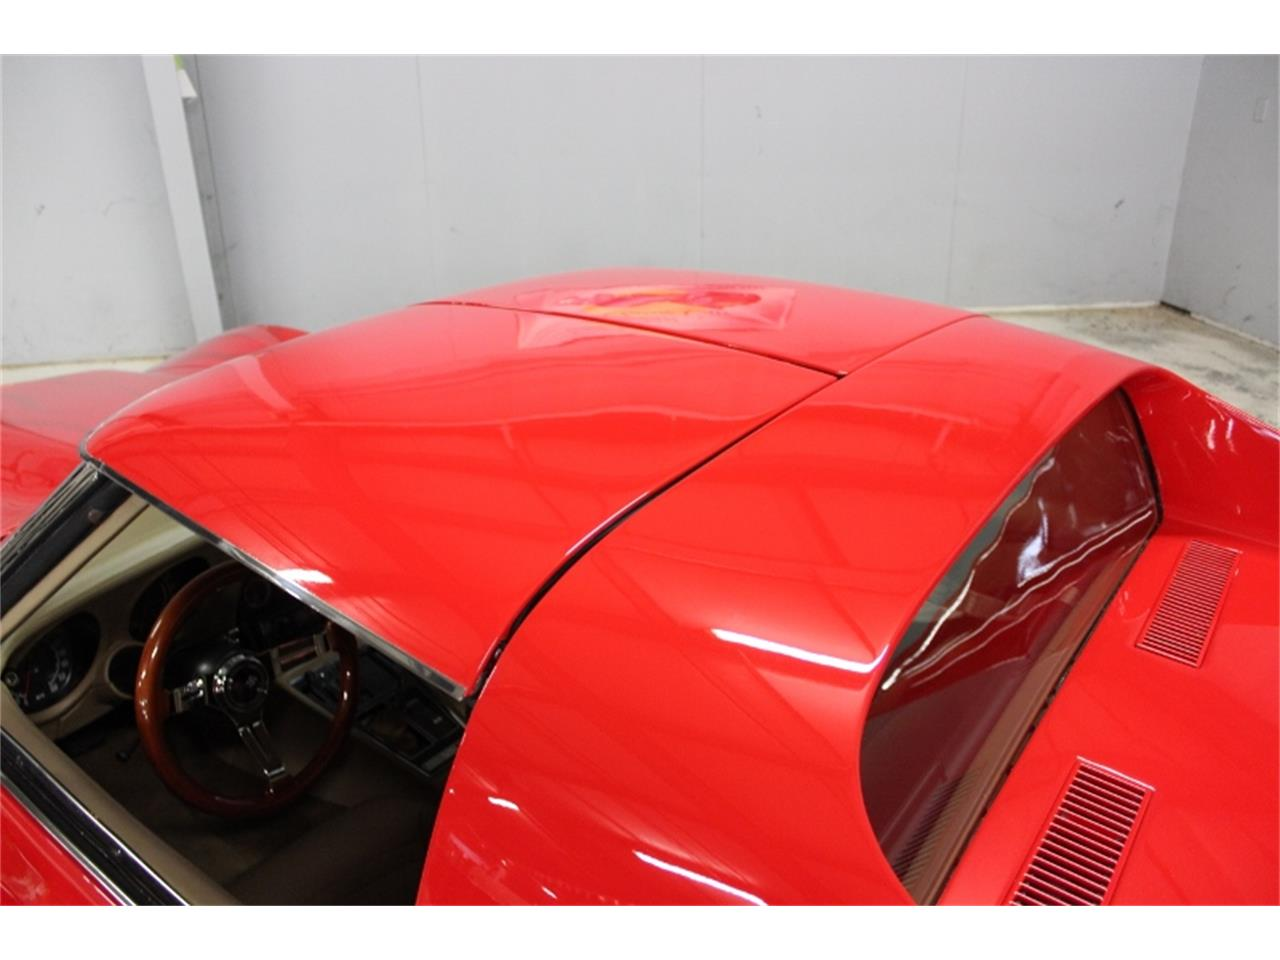 1973 Chevrolet Corvette for sale in Lillington, NC – photo 23